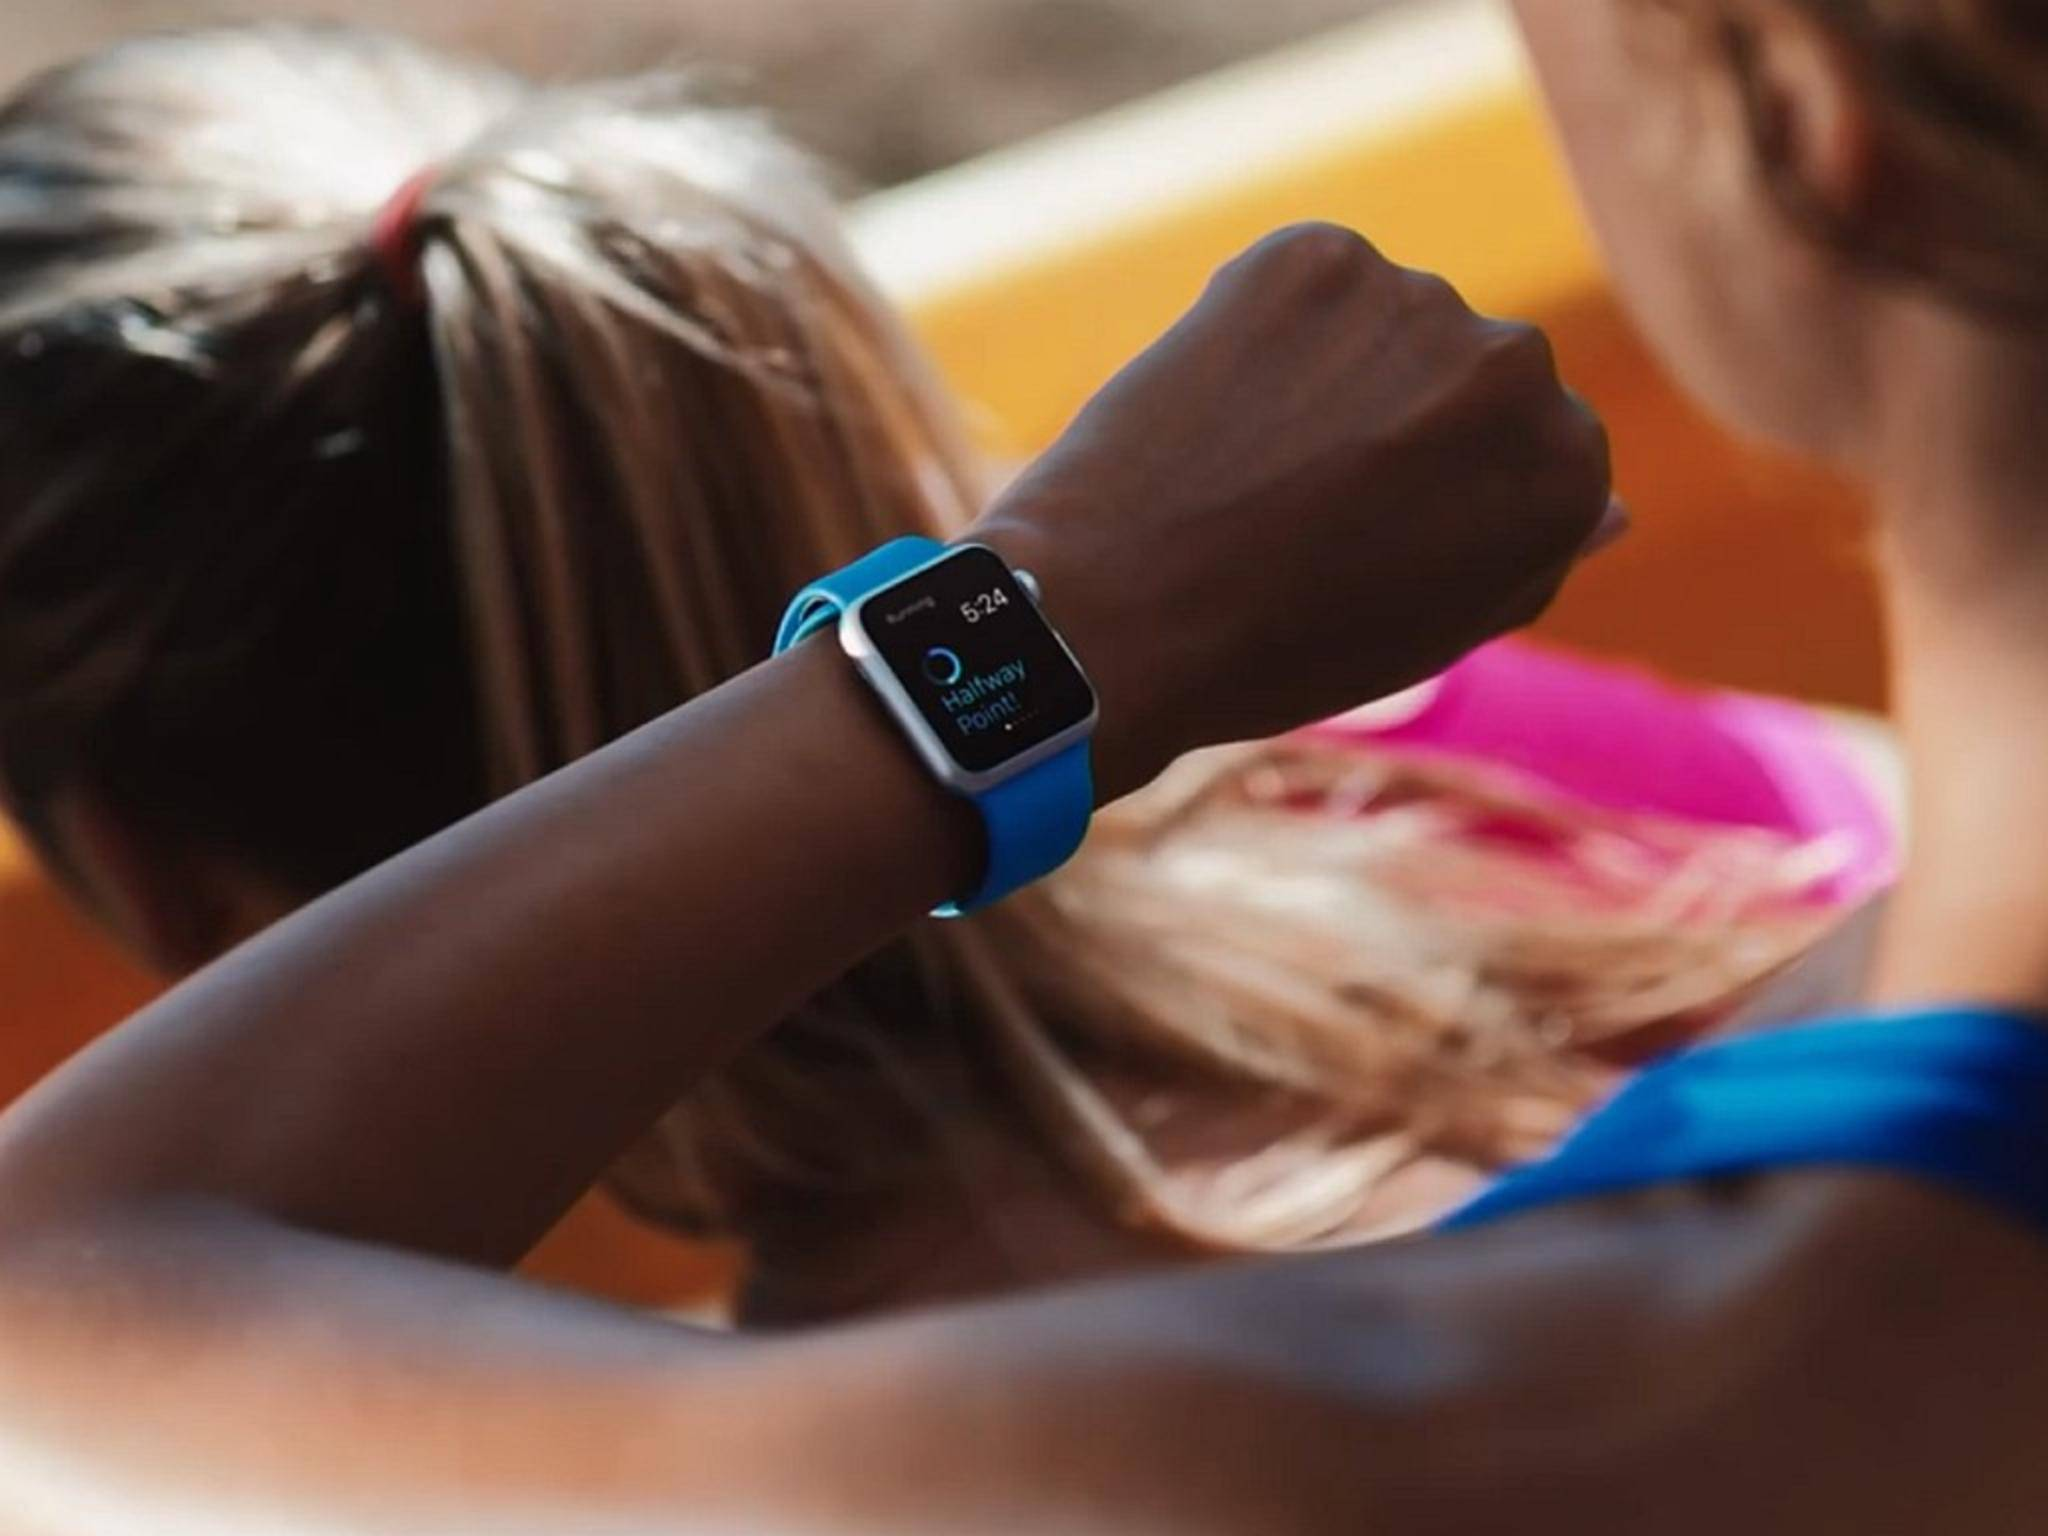 Die Apple Watch kommt am 24. April auf den Markt.